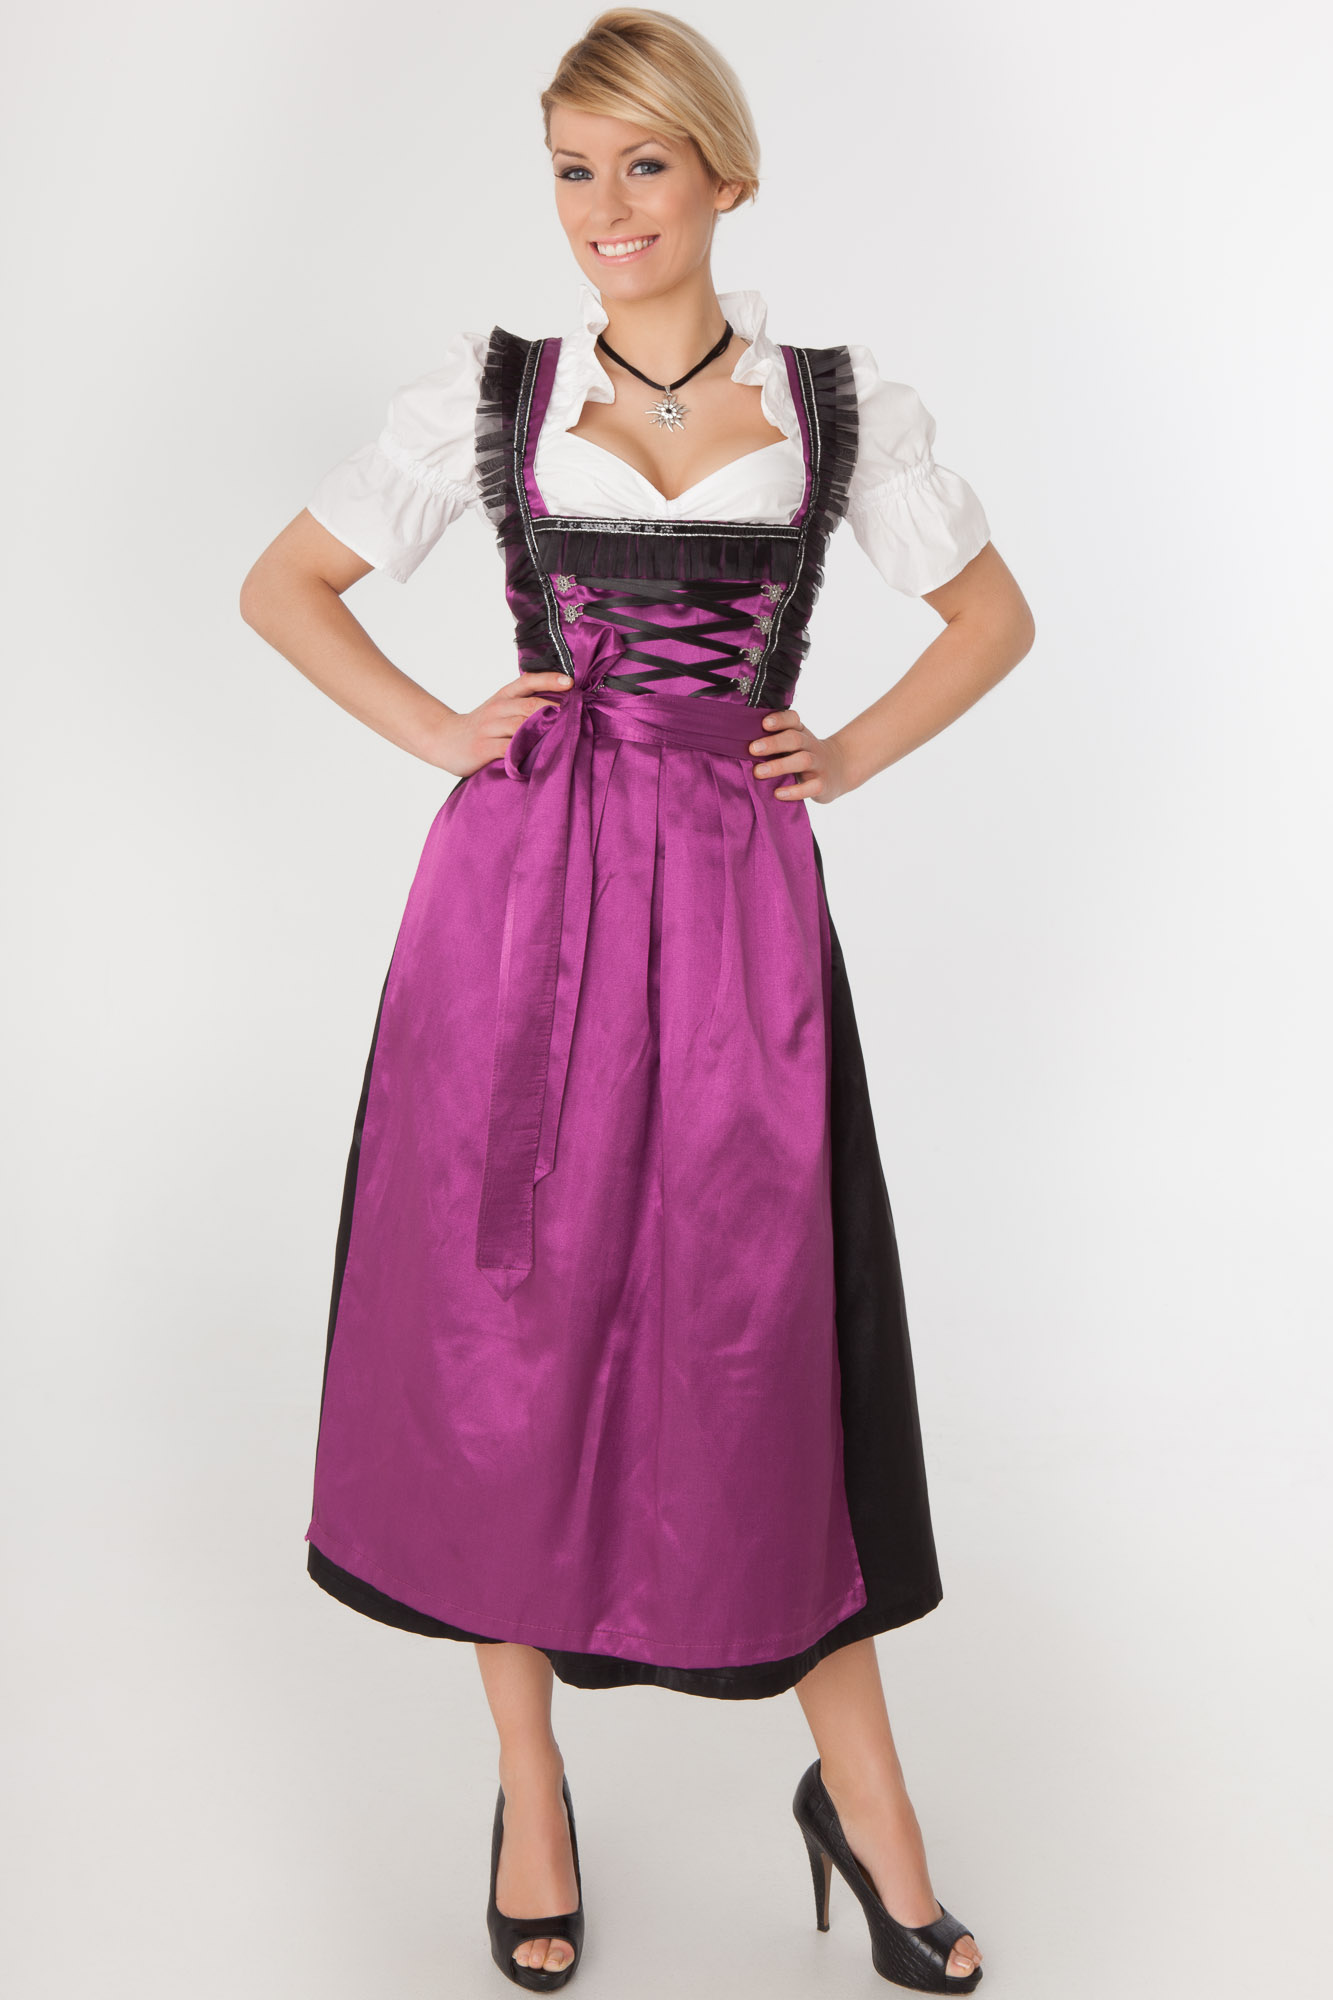 Summer Women's 2 Pieces Dirndl Dress Maid Outfit Oktoberfest Fancy Dress Carnival Bavarian Cosplay Sexy Long